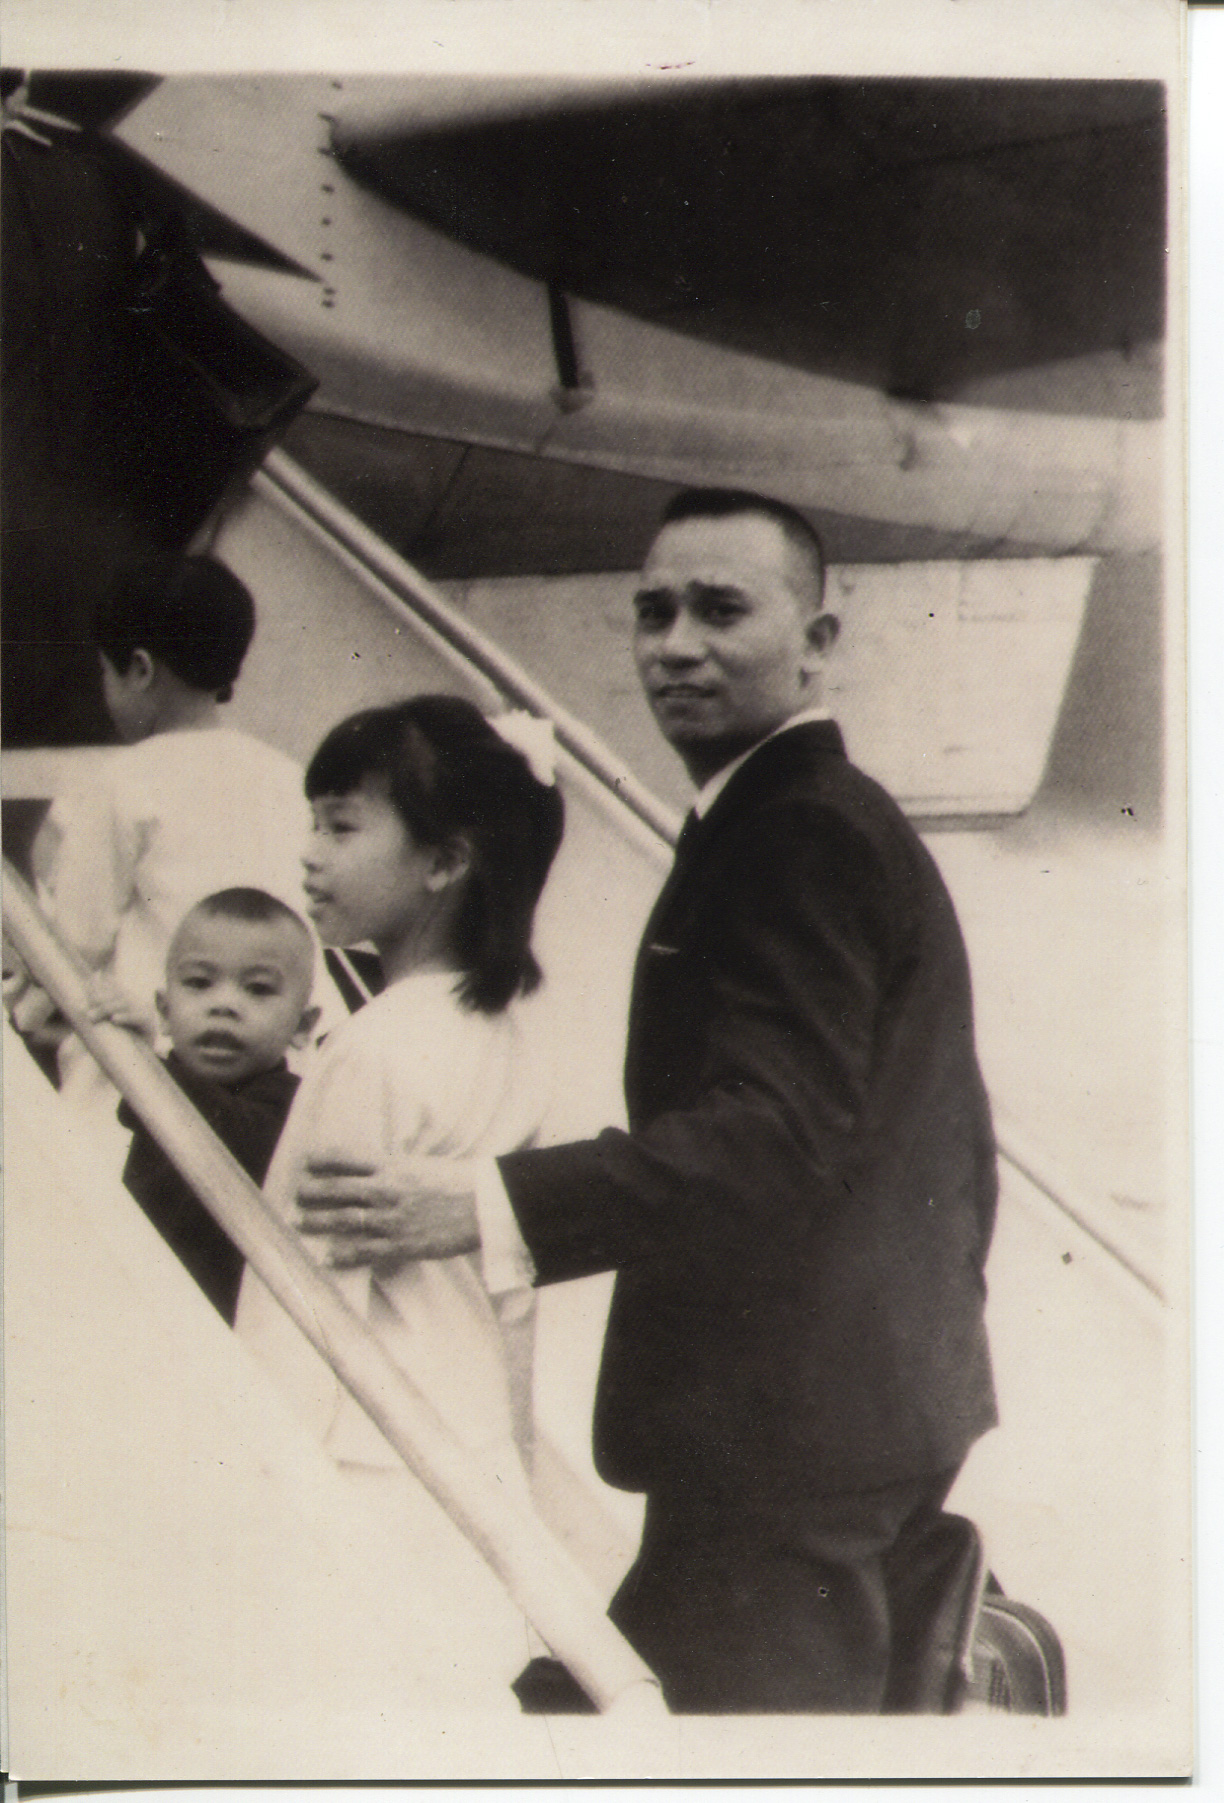 "Photo of Arguelles and family, 1969.  This is a newer copy (one of many) which Arguelles acquired in 2008 from an aunt. The photo was taken at the Manila airport and Arguelles said it could be a TWA airplane to Canada. Left to right: back of mother (Magdalena- holding Gene [brother] not pictured), Magdalena (self), Lester (brother), Althea (sister), Jose (father). Written on the back is: ""MIA June 16, 1969 They go afar off with the faith of Abram but shall come back with the thoughts and feelings of Jacob. -P Molina. He looked back to explain his sad thoughts. ""To Morit and Toting""  Arguelles said the photo was important because it represents a total break from the country she had known until age 6. She said leaving broke her whole idea of the world and that she understood the world was bigger. Arguelles had to be tutored in English and got new clothes. For her parents (dad was 40), Arguelles said there were far better economic opportunities. Both parents had siblings who were nurses in Canada. Arguelles' parent's siblings helped them in Canada and it was an exciting time. Arguelles said that excitement wore off, leaving the difficulties and prejudices of a new country.   Any views, findings, conclusions, or recommendations expressed in this story do not necessarily represent those of the National Endowment for the Humanities. [Copyright] Field Museum of Natural History - CC BY-NC"